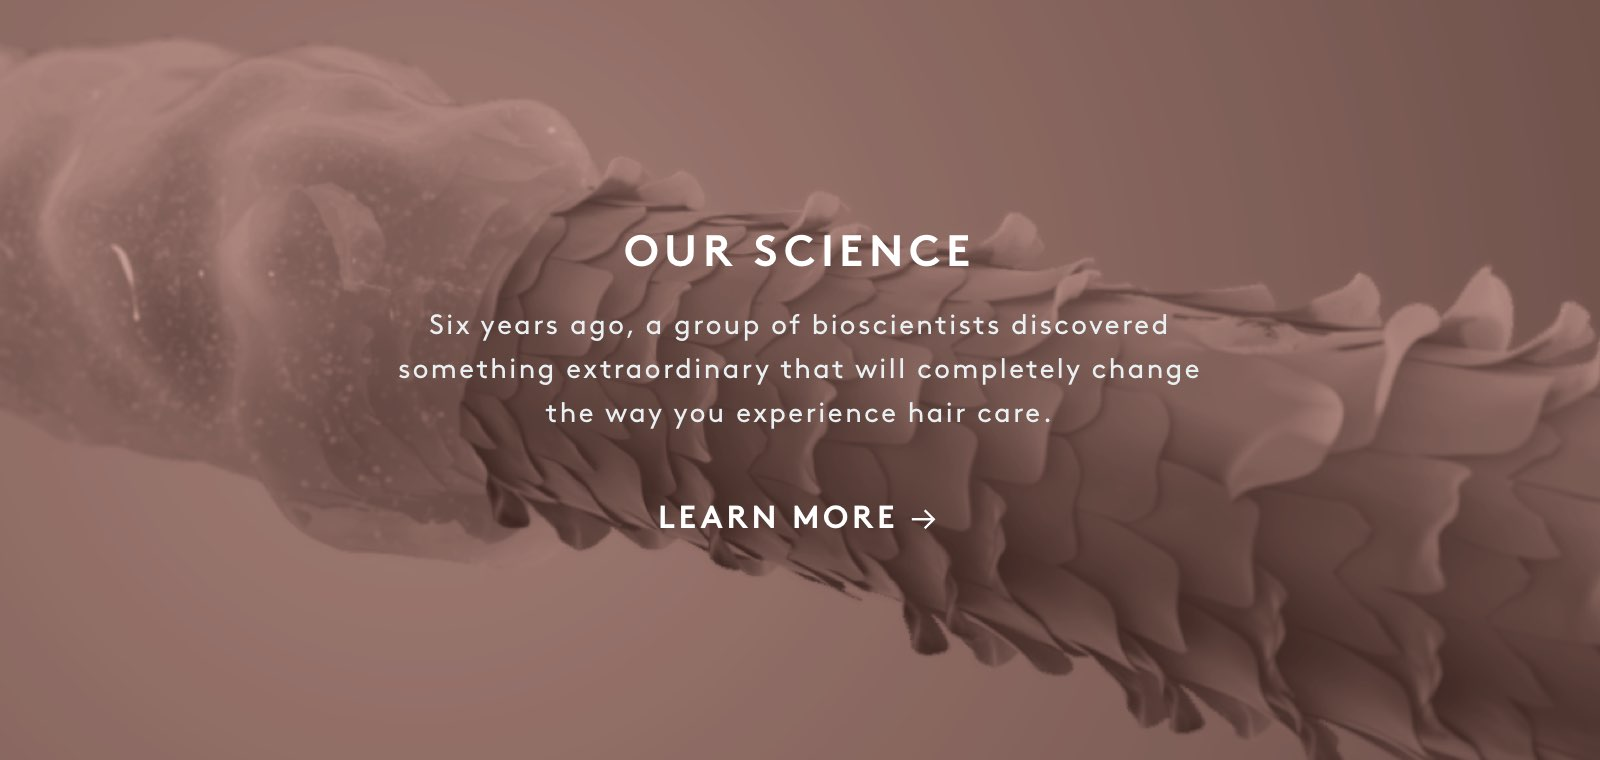 Our Science